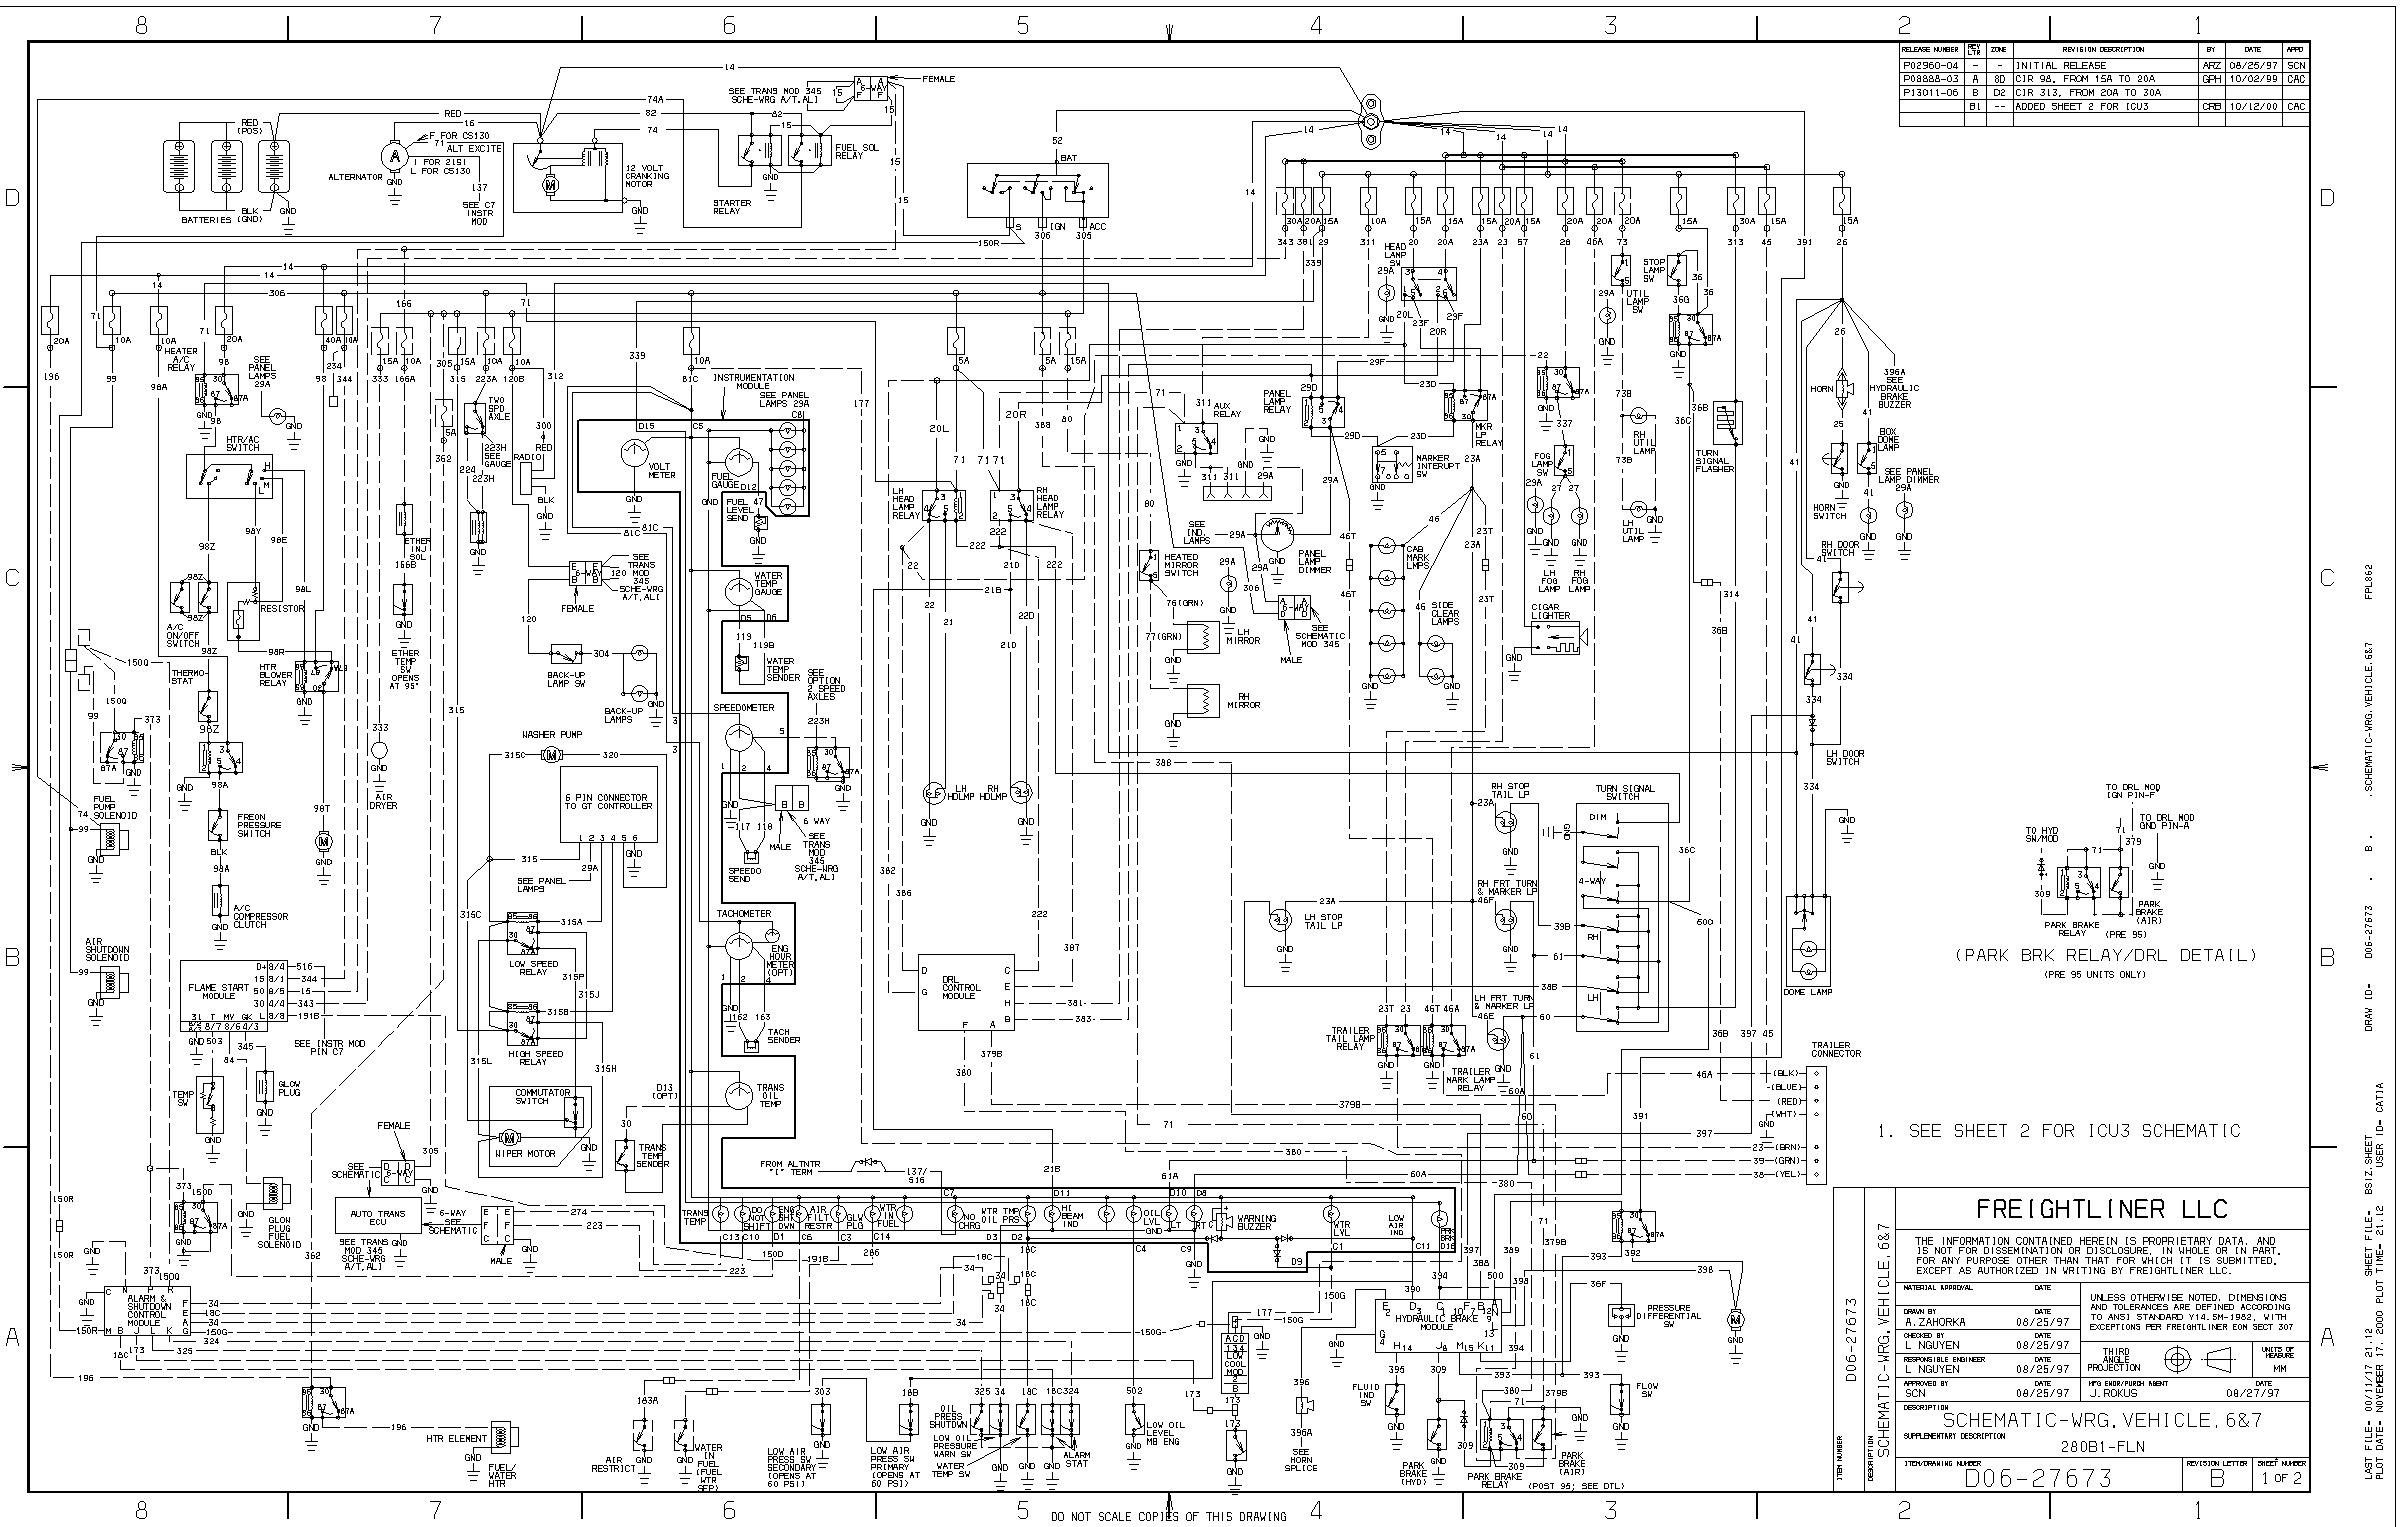 Sterling truck wiring diagrams wiring diagram detailed 2006 freightliner wiring diagram c15 2000 sterling cab electrical wiring diagram 7 wlj savic family sterling heater wiring schematic sterling truck wiring diagrams